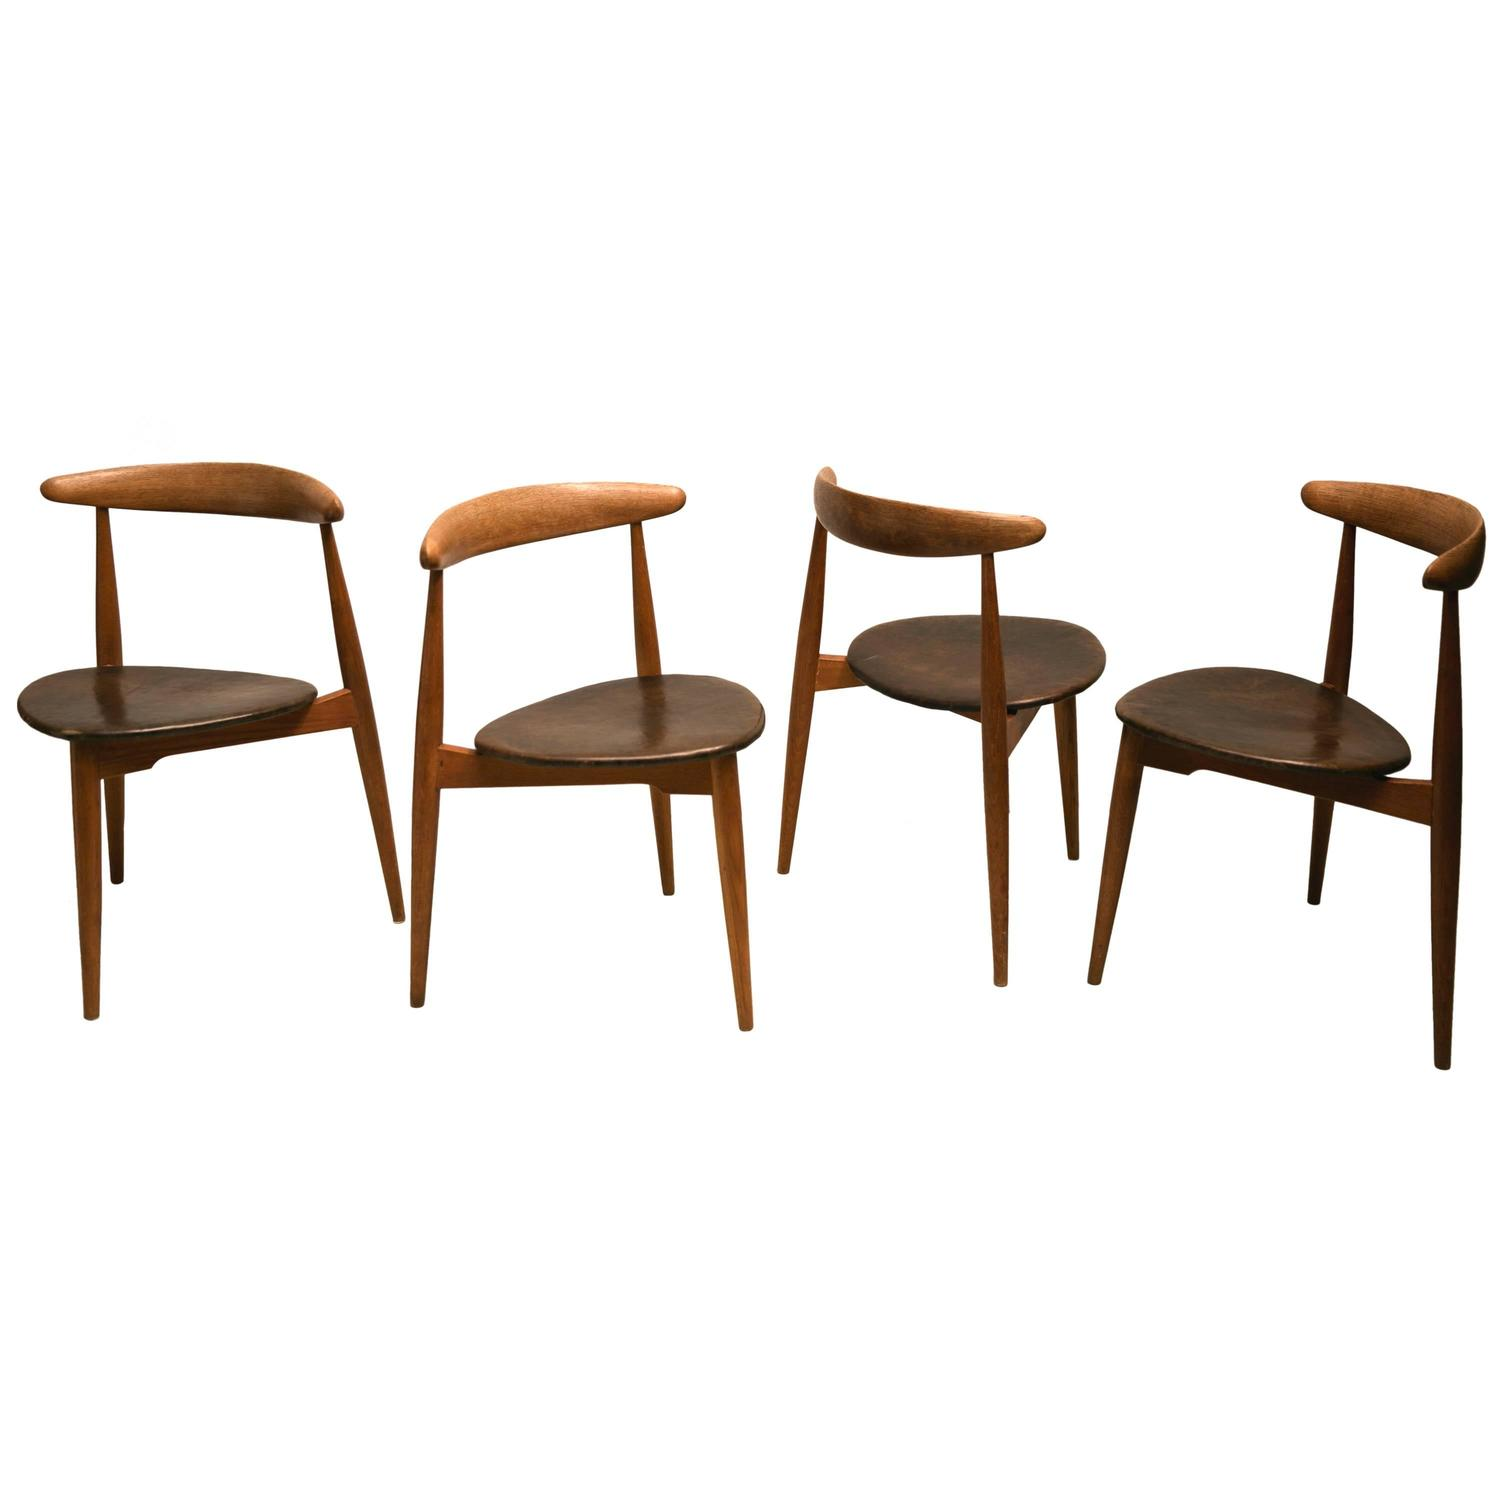 Set Of Four Stacking U201cThe Heartu201d Dining Chairs, Model FH 4103 By Hans Wegner  For Sale At 1stdibs